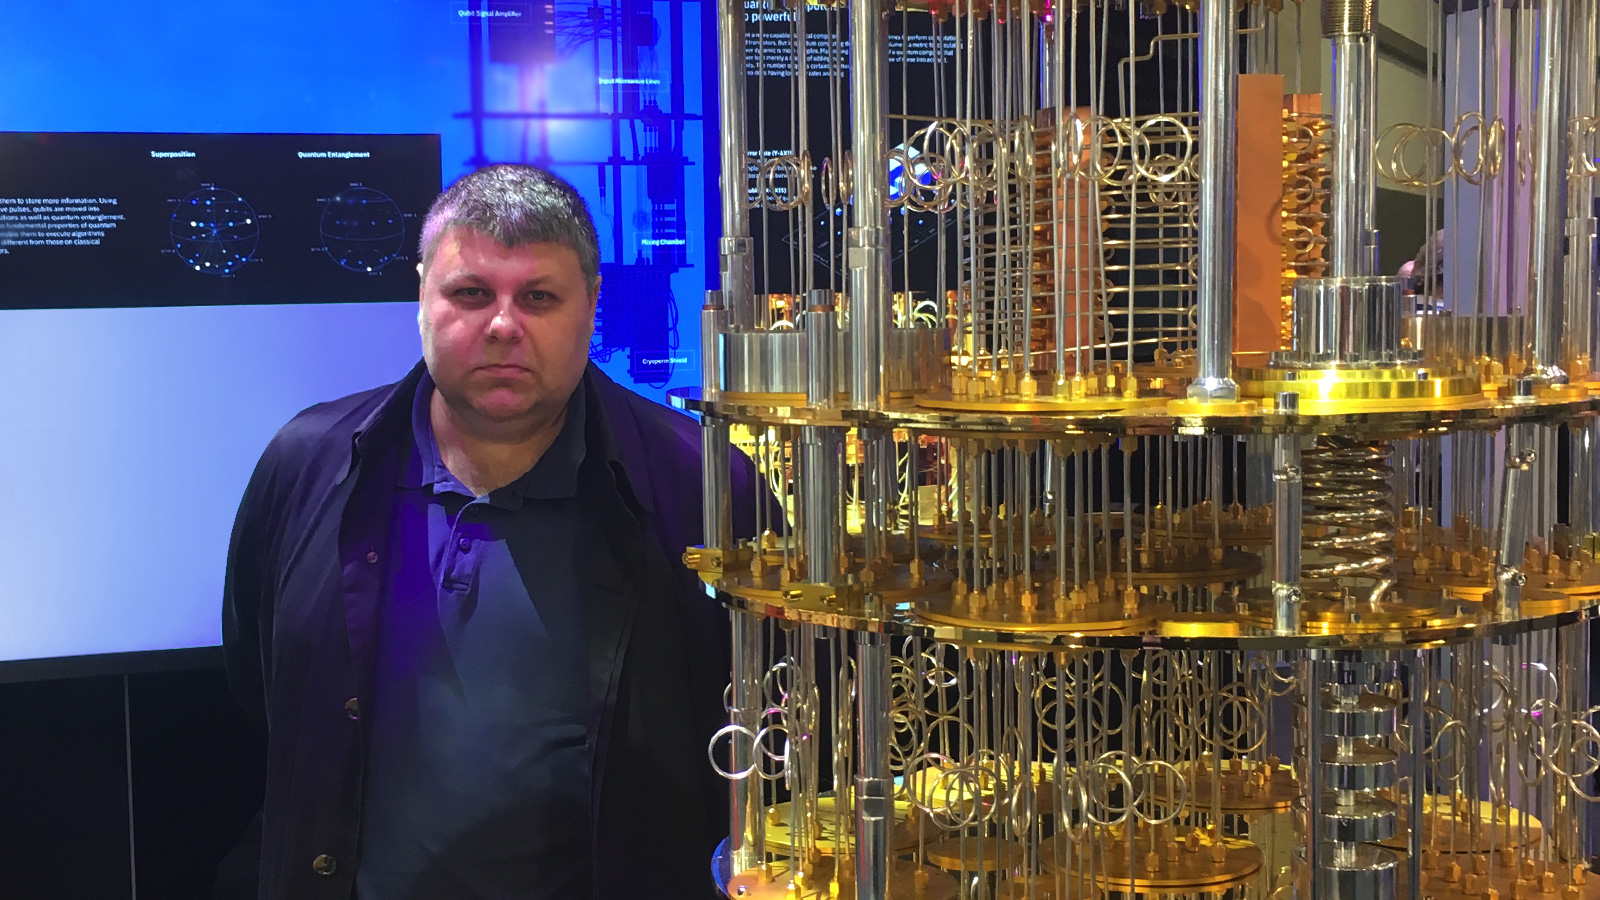 Dr. Alexeev with a model of an IBM Q quantum computer